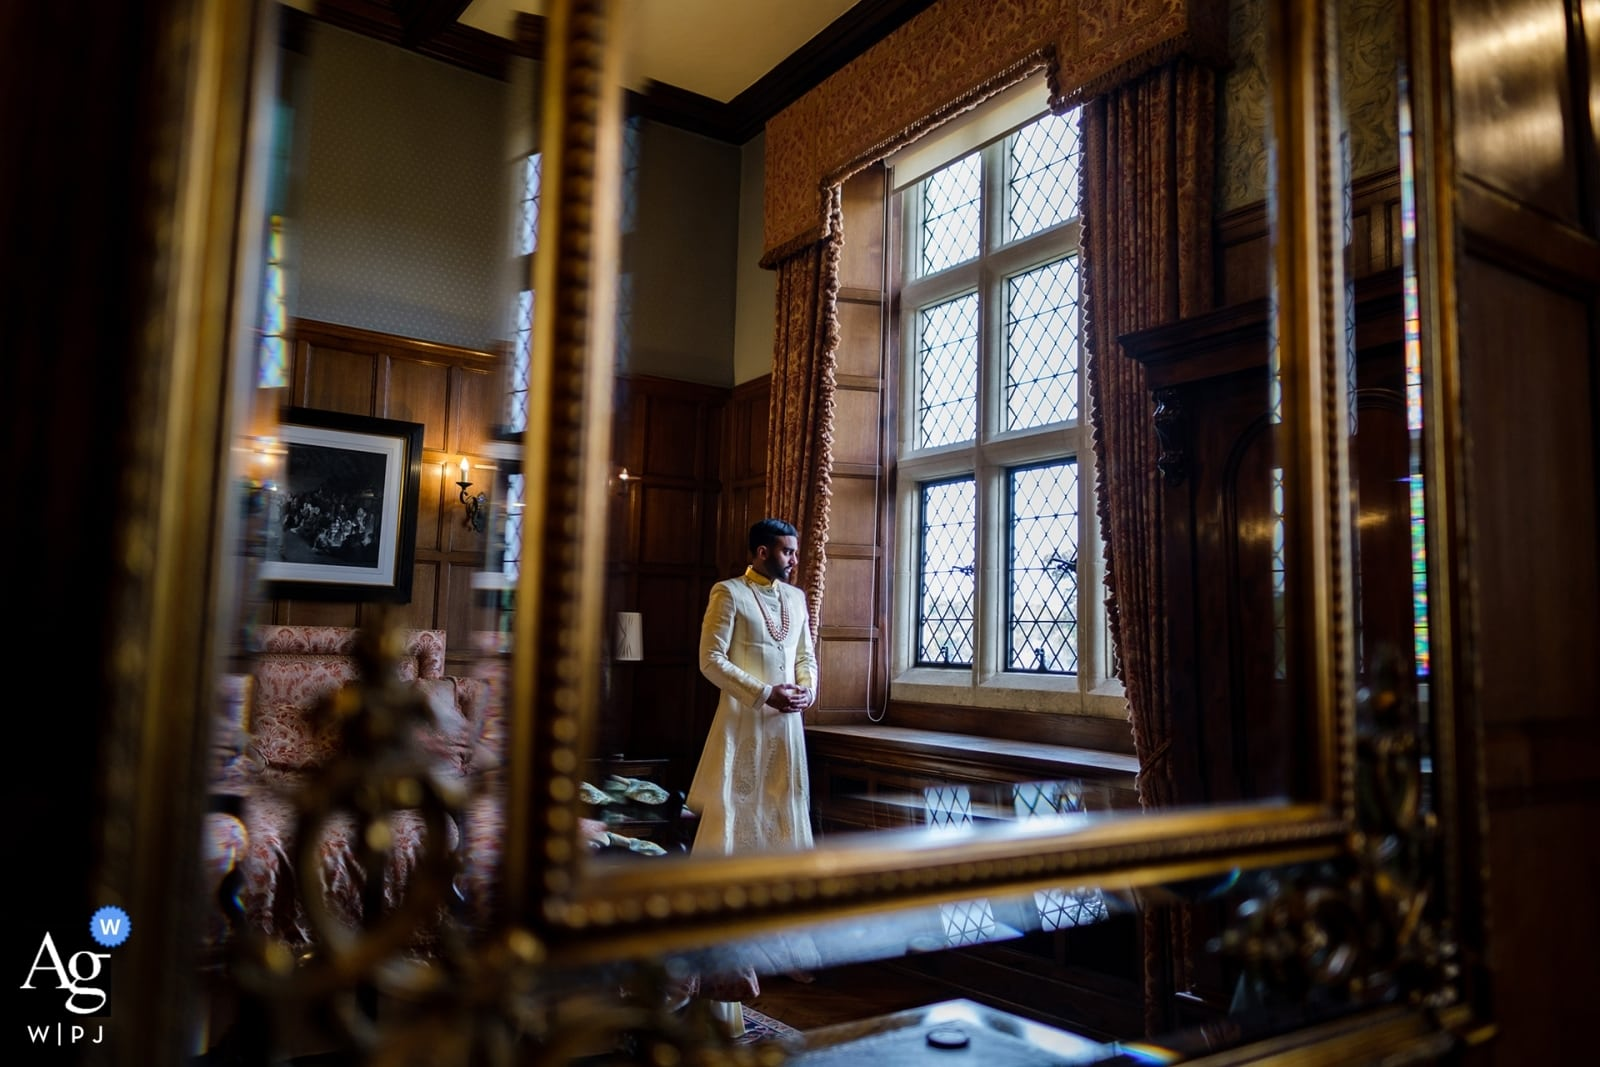 North mymms indian documentary wedding photographer